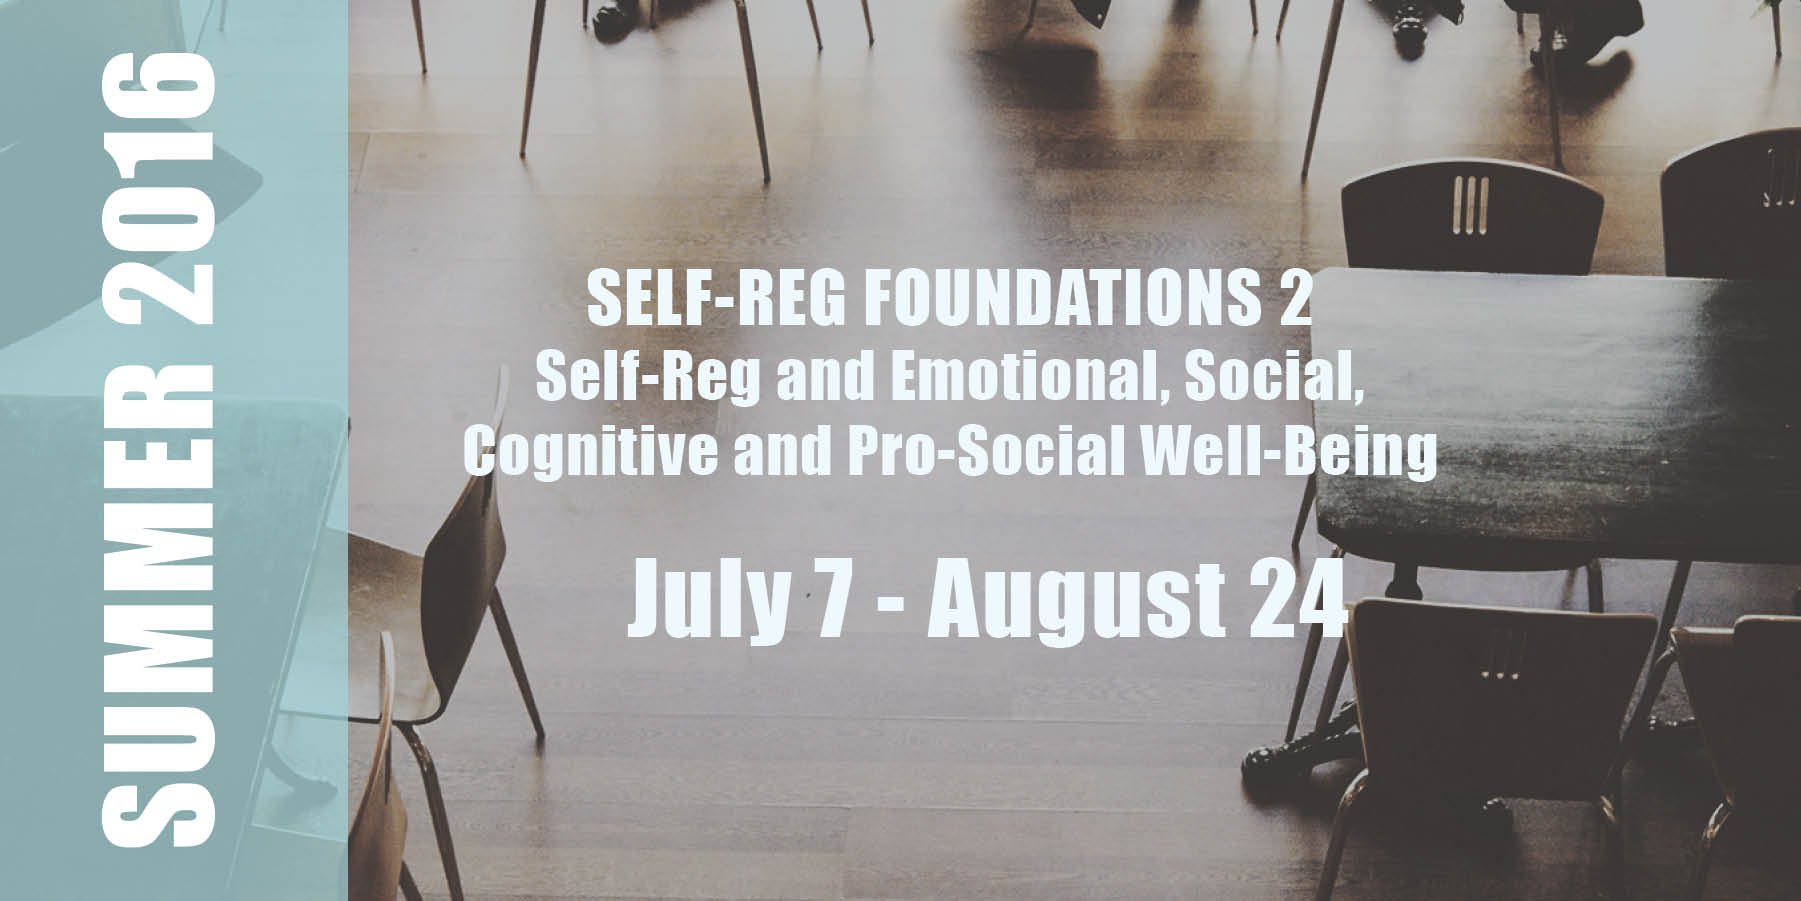 S-R Foundations 2    Date:  July 7 - August 24